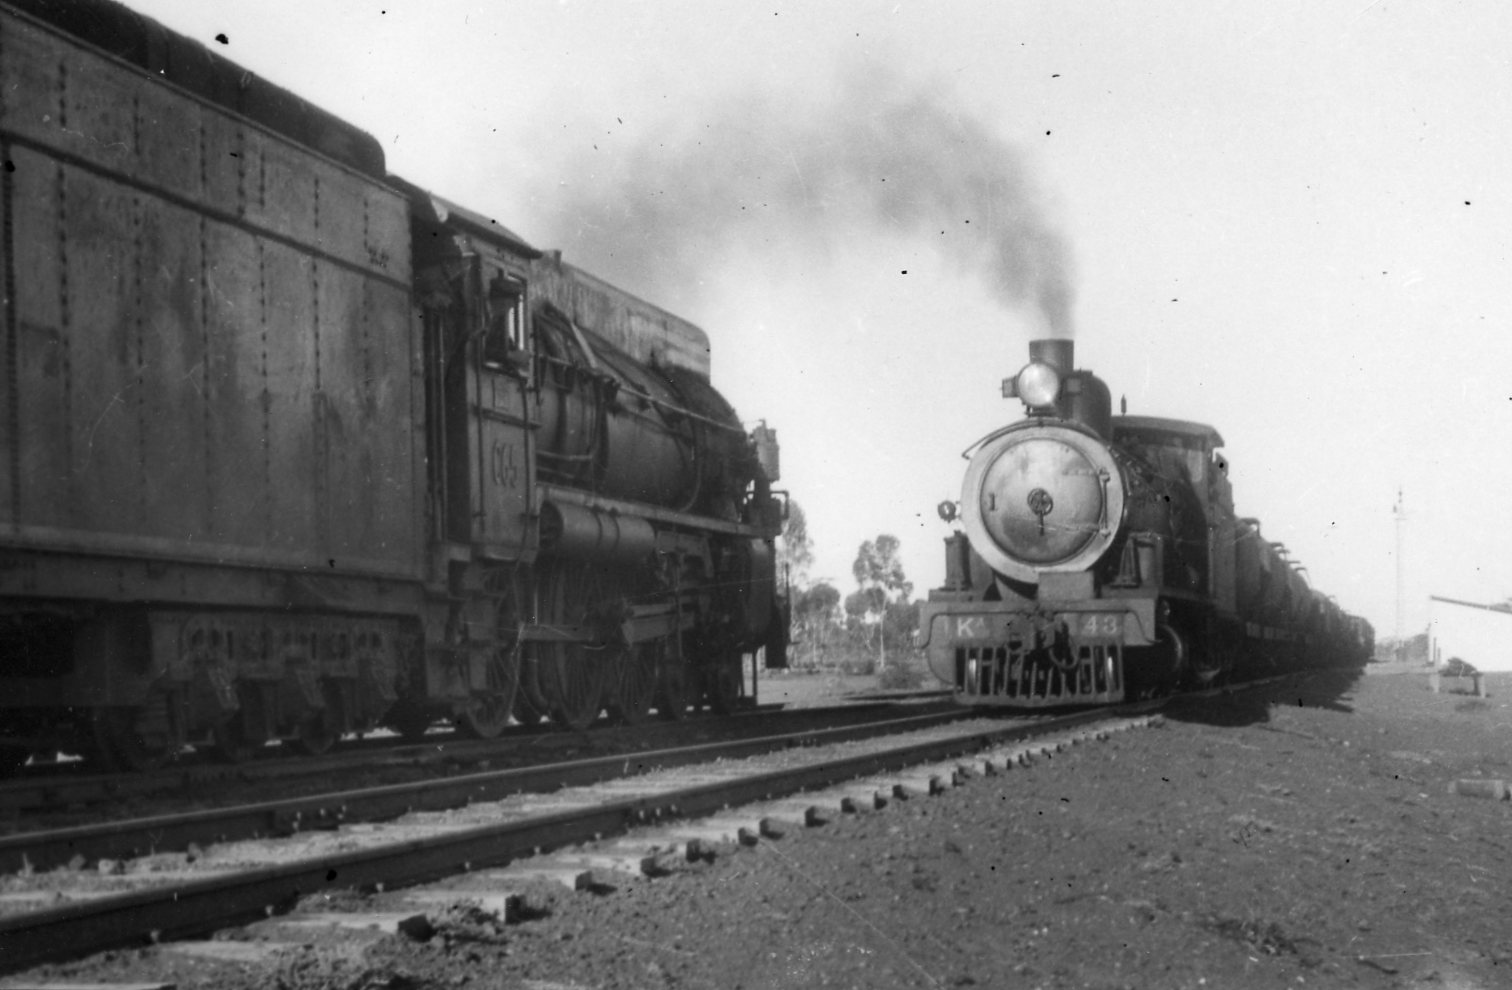 11887 - CR Locos KA43 and C65 crossing at an unknown location (NRM General Print Collection)